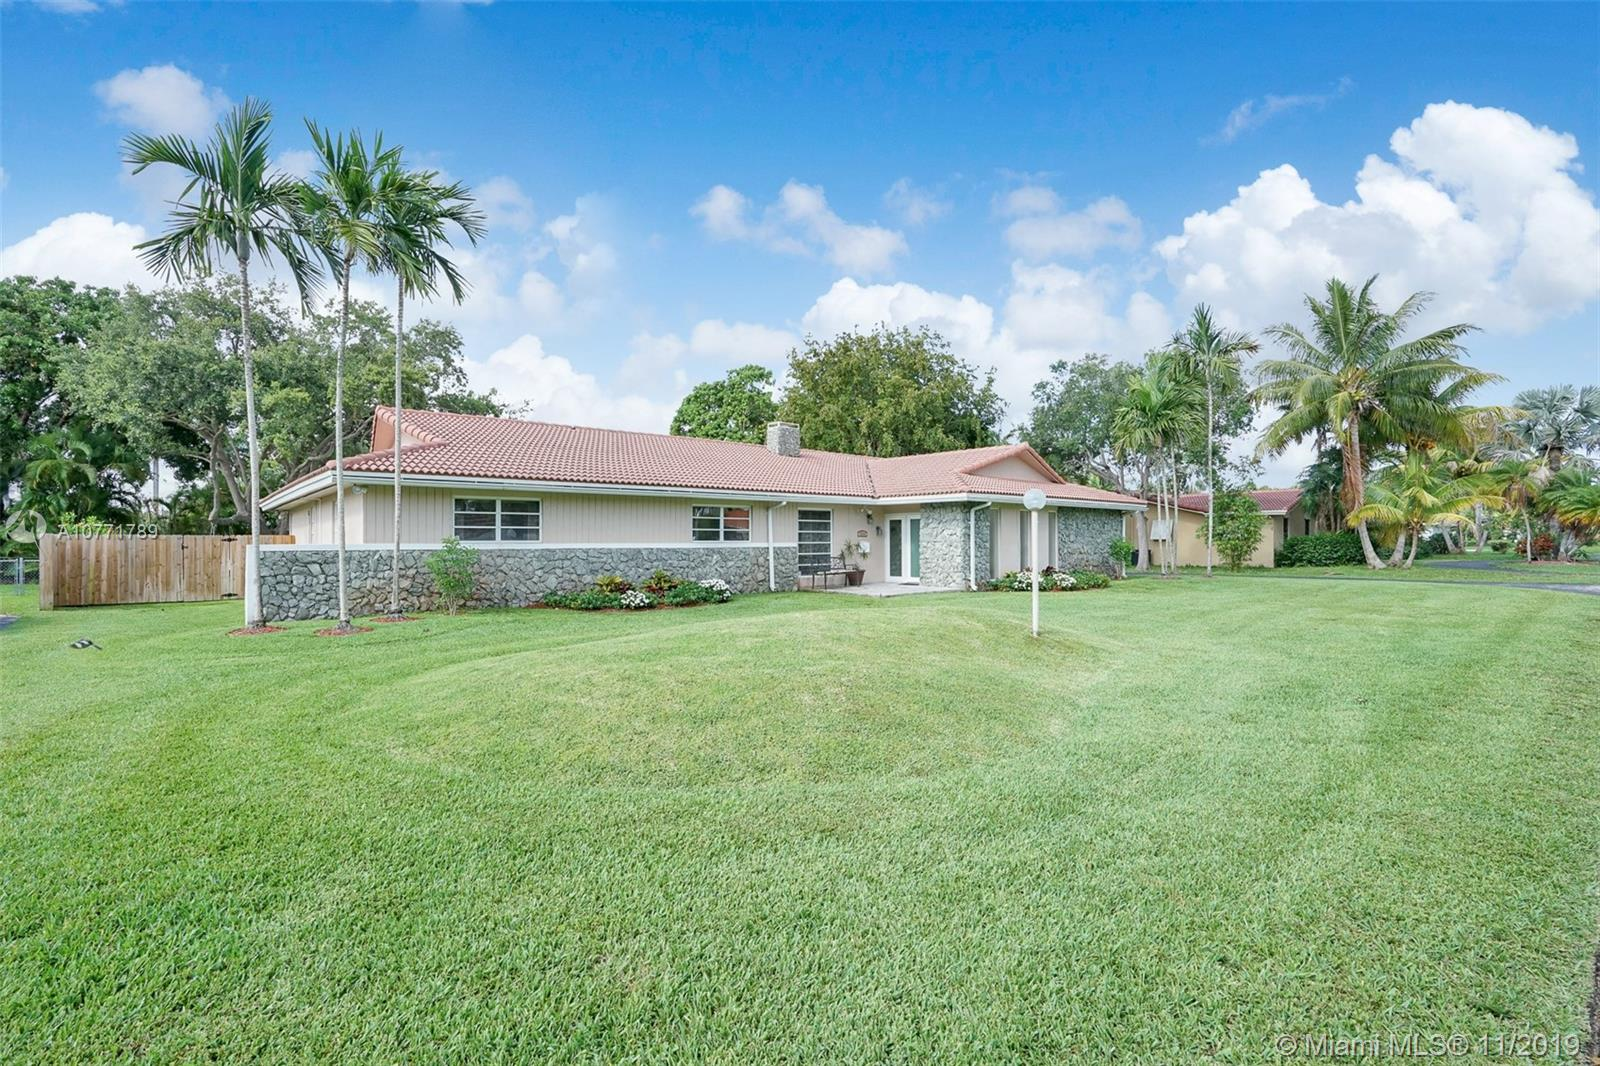 7834 SW 165th St, Kendall in Miami-dade County County, FL 33157 Home for Sale